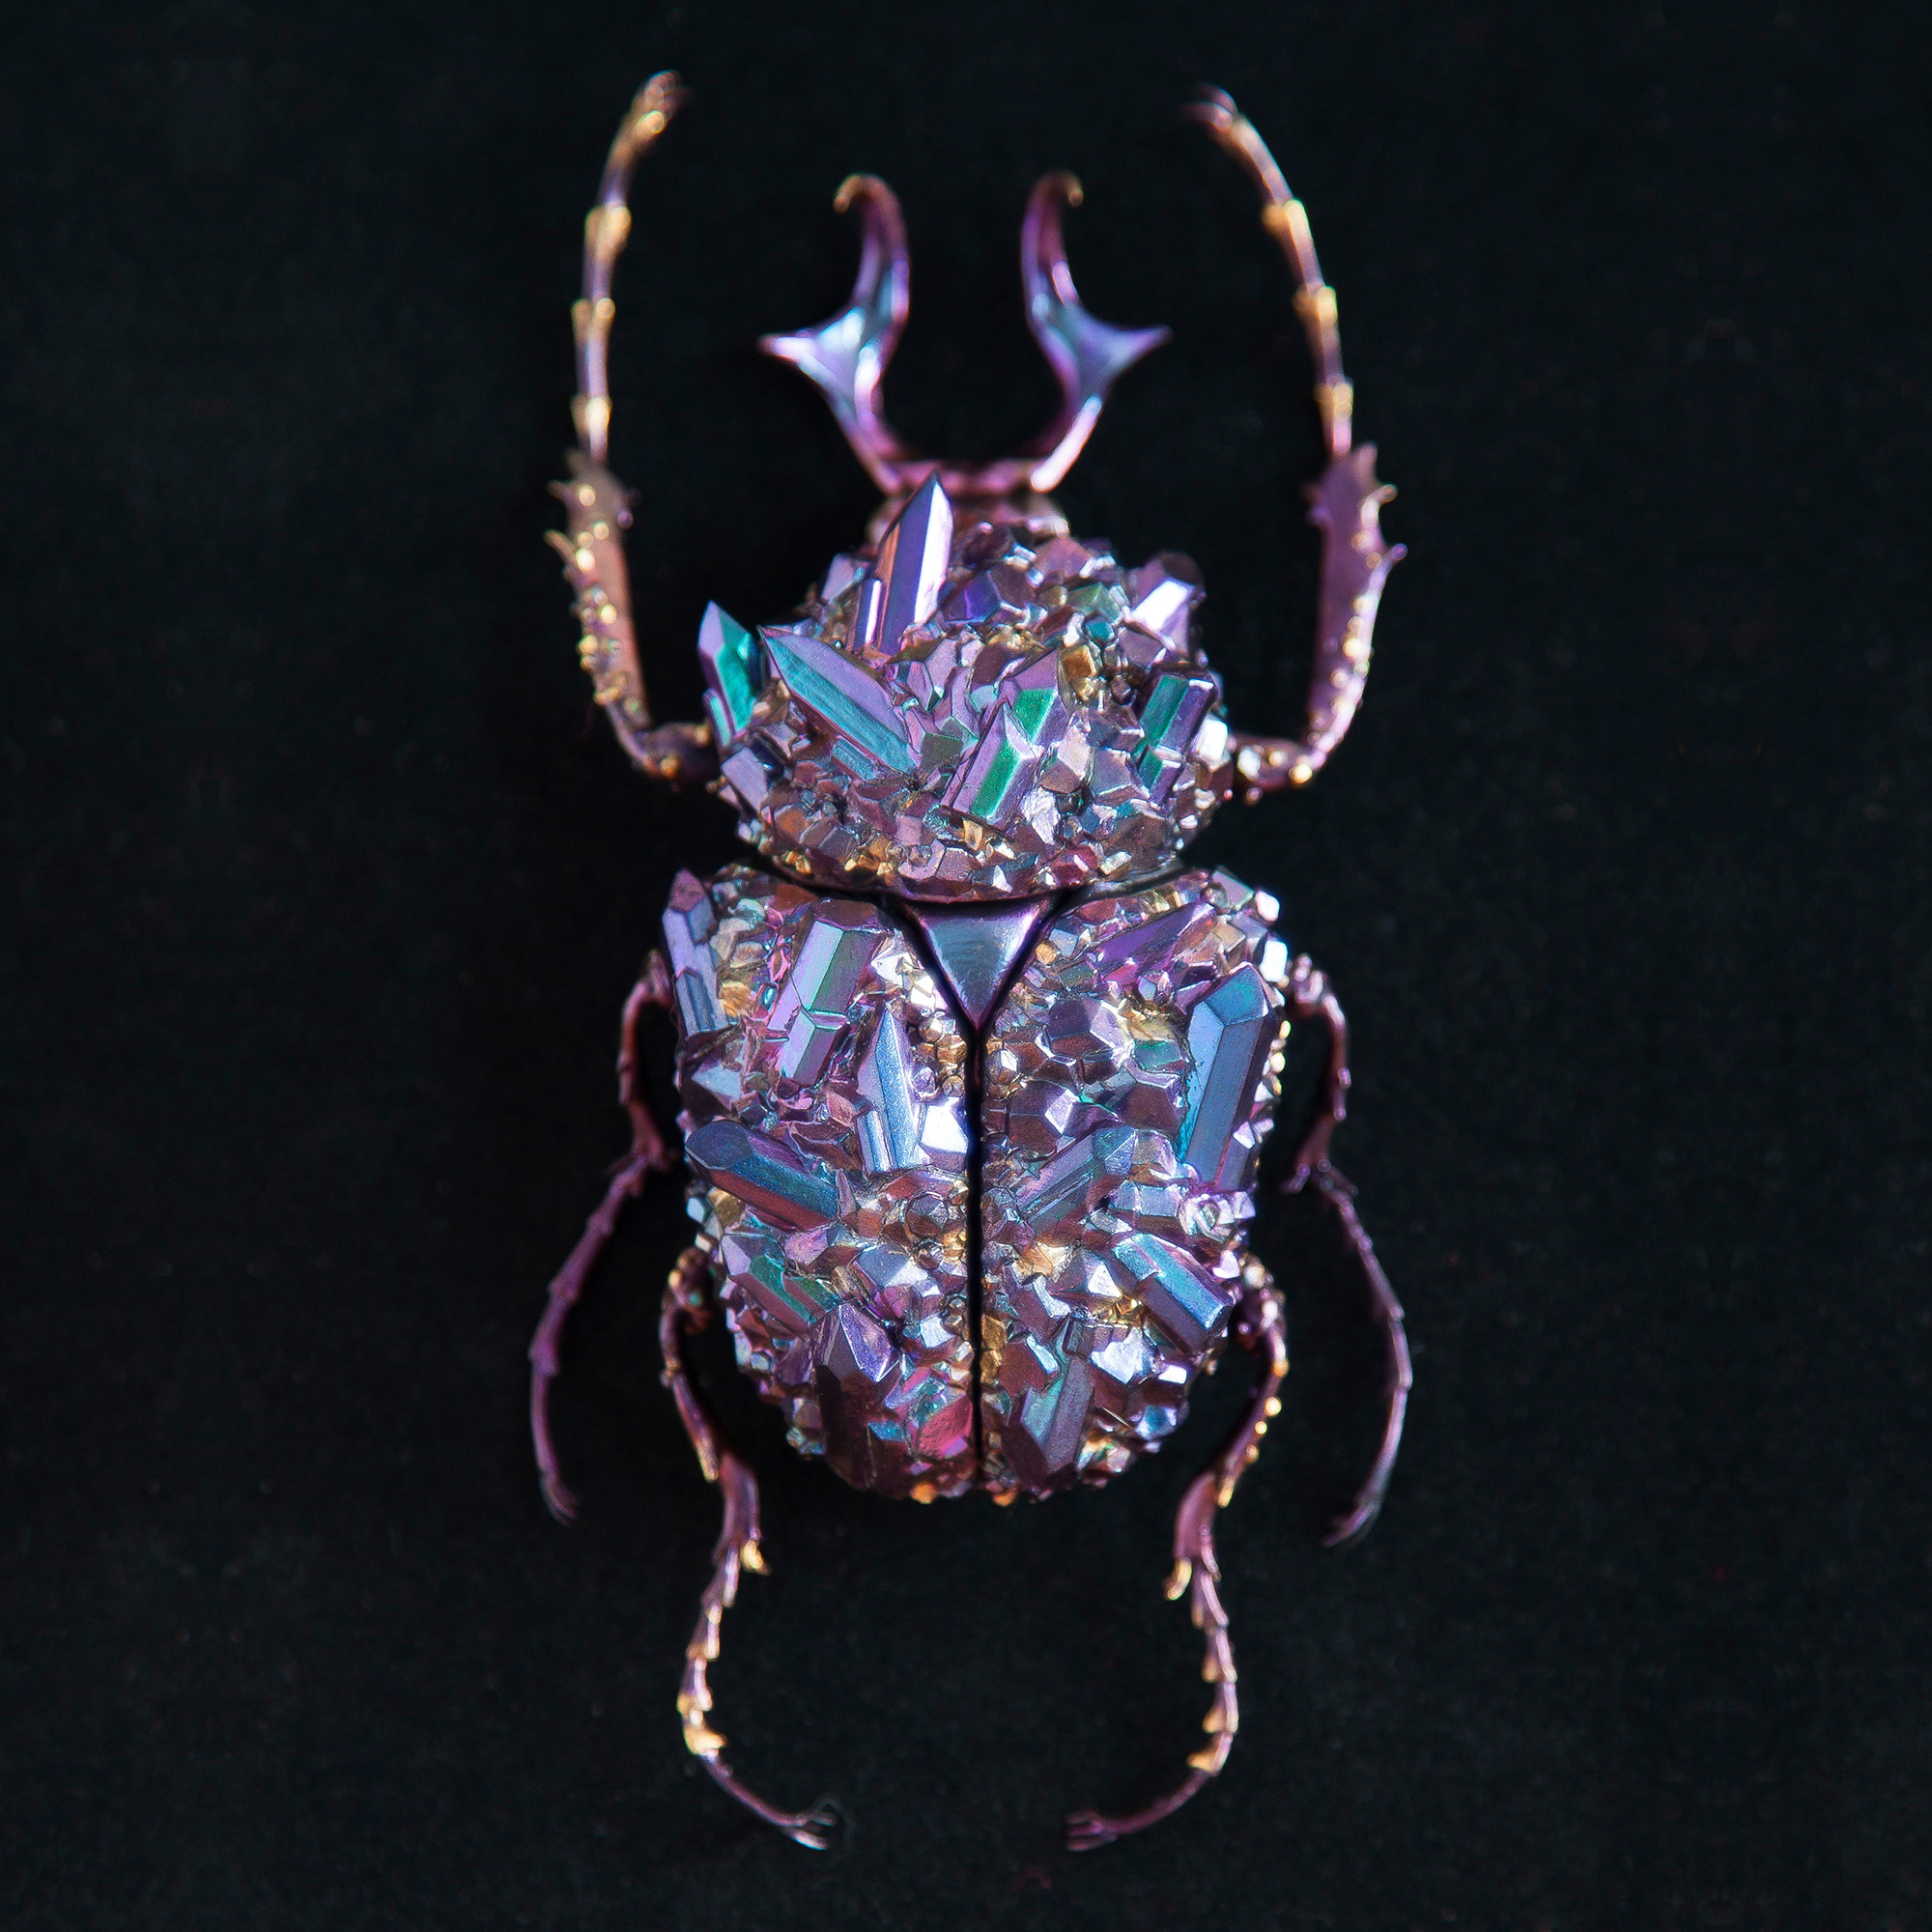 Beetle Sculptures Encrusted with Minerals by Nozomi (7 pics)